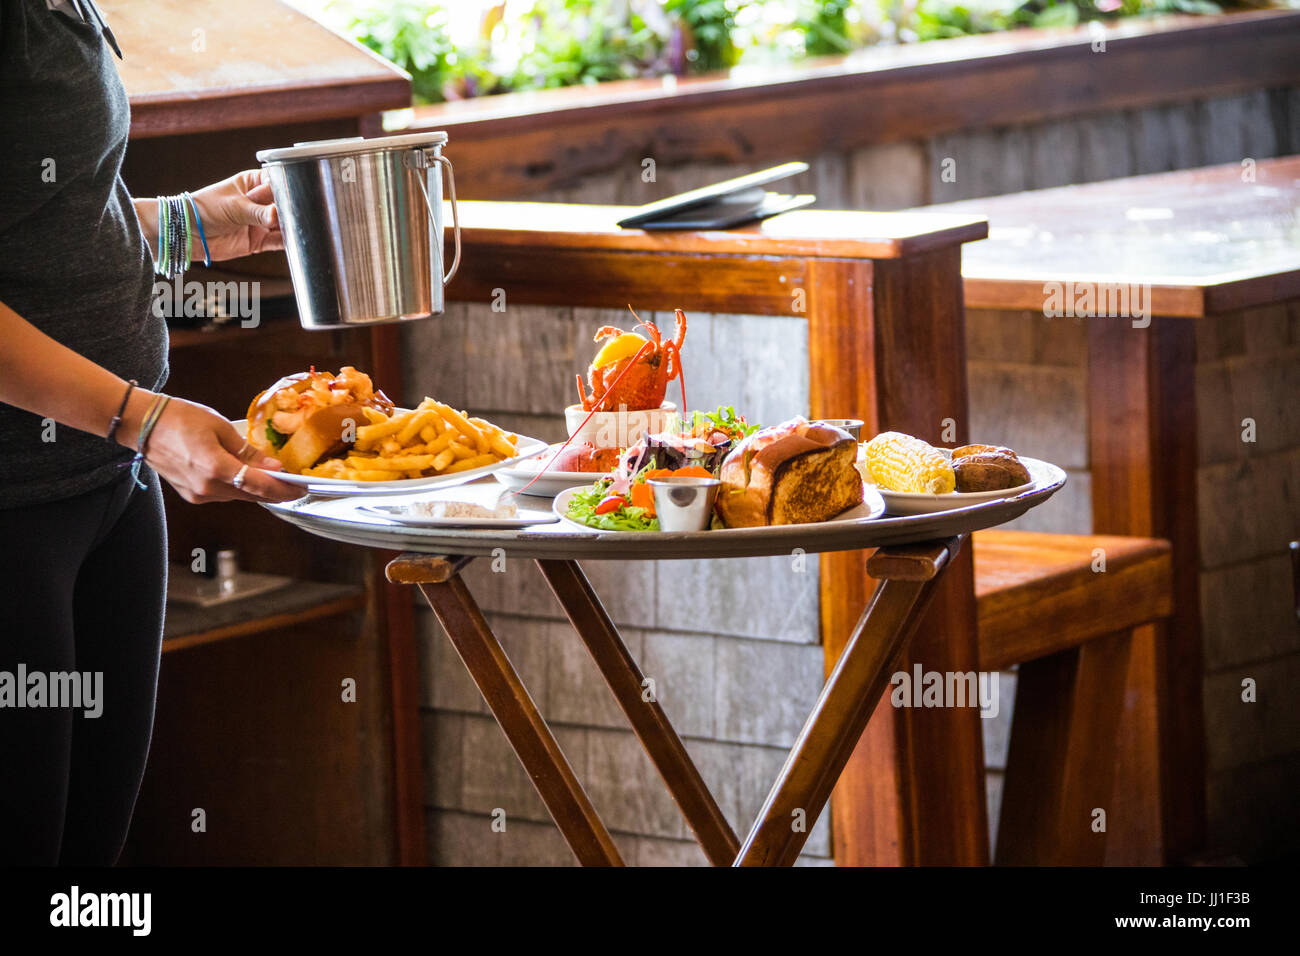 The Nantucket Lobster Trap Restaurant, Nantucket, MA, USA - Stock Image